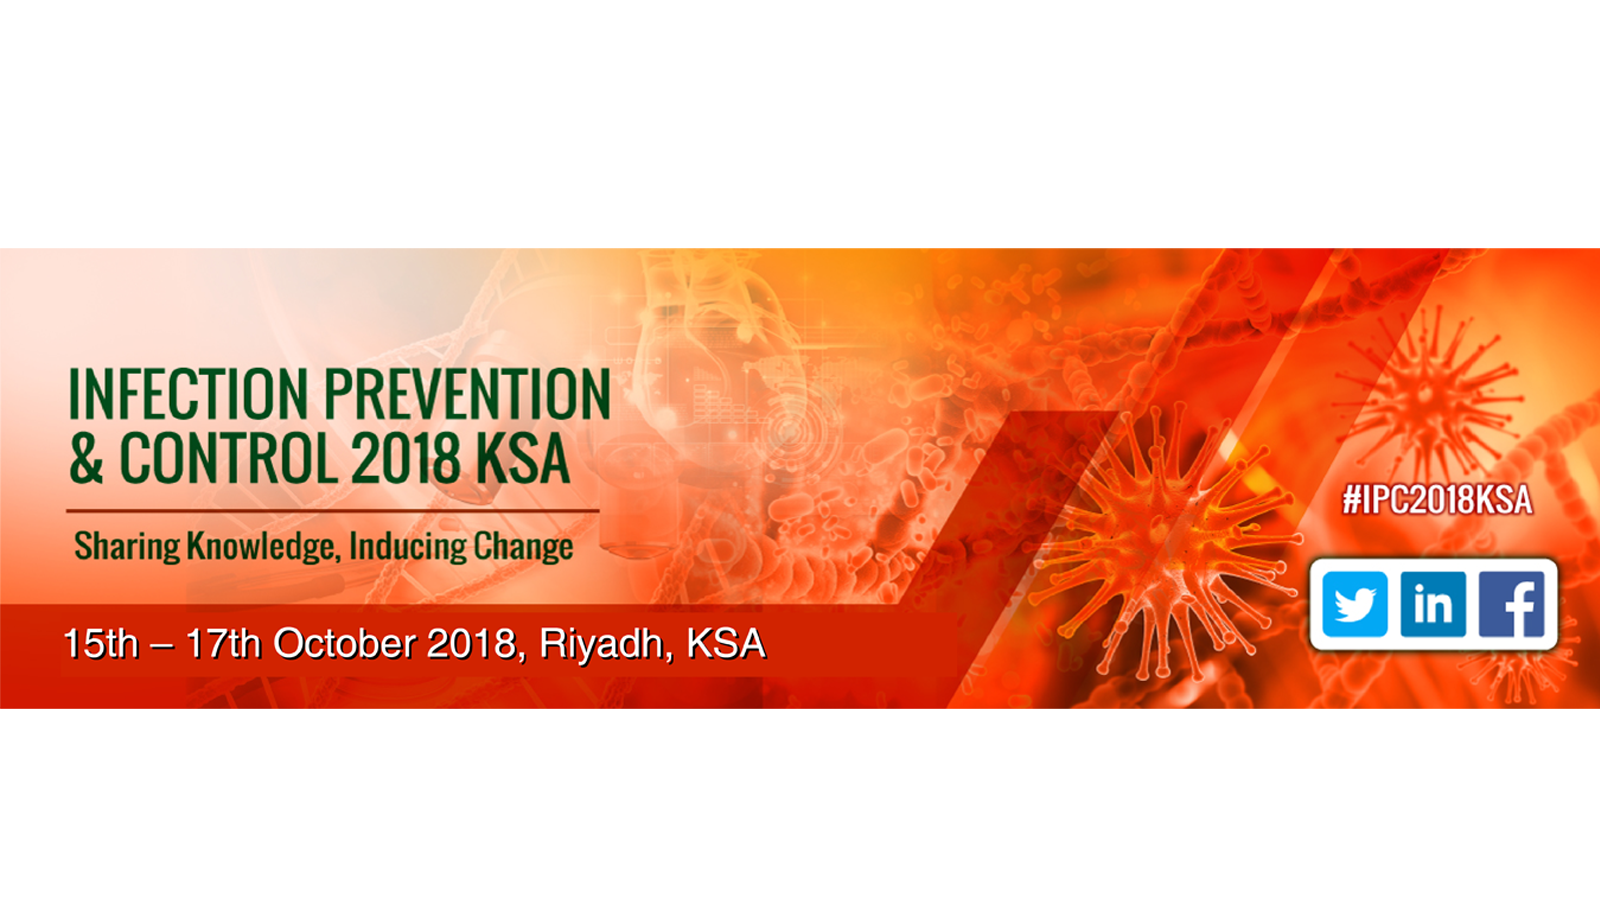 Infection Prevention and Control KSA 2018